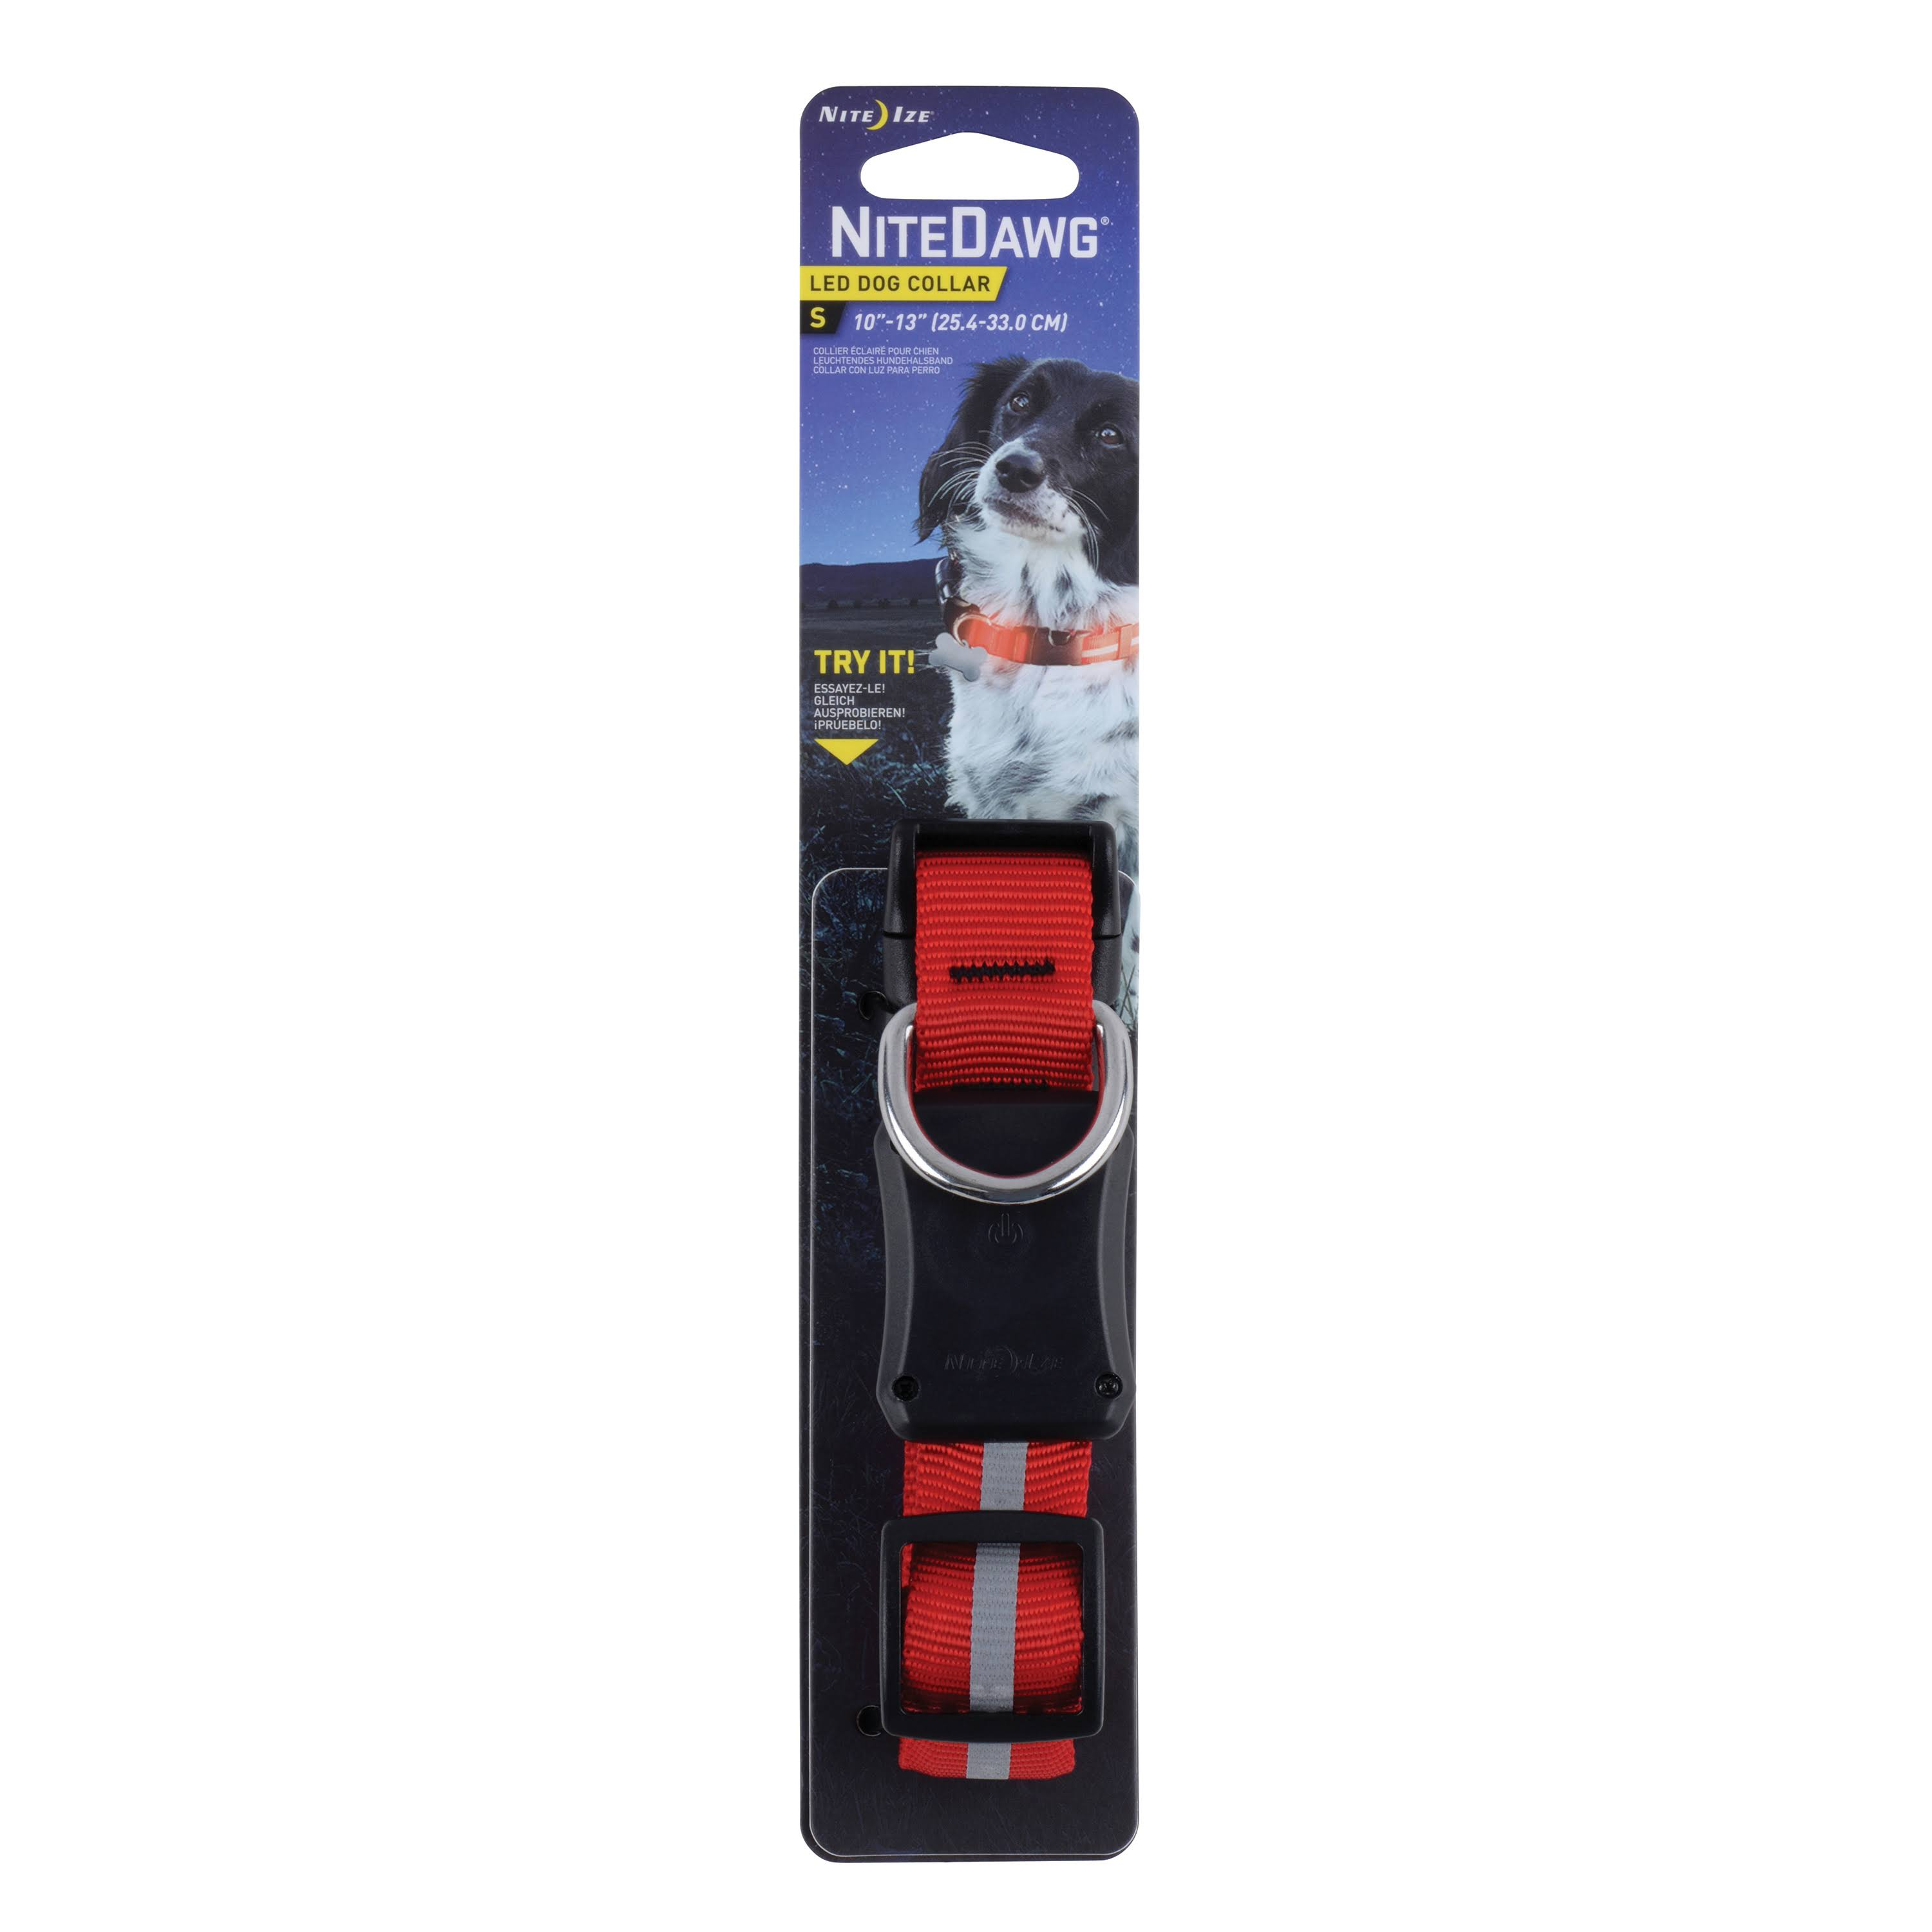 Nite Ize Nite Dawg LED Dog Collar - Red